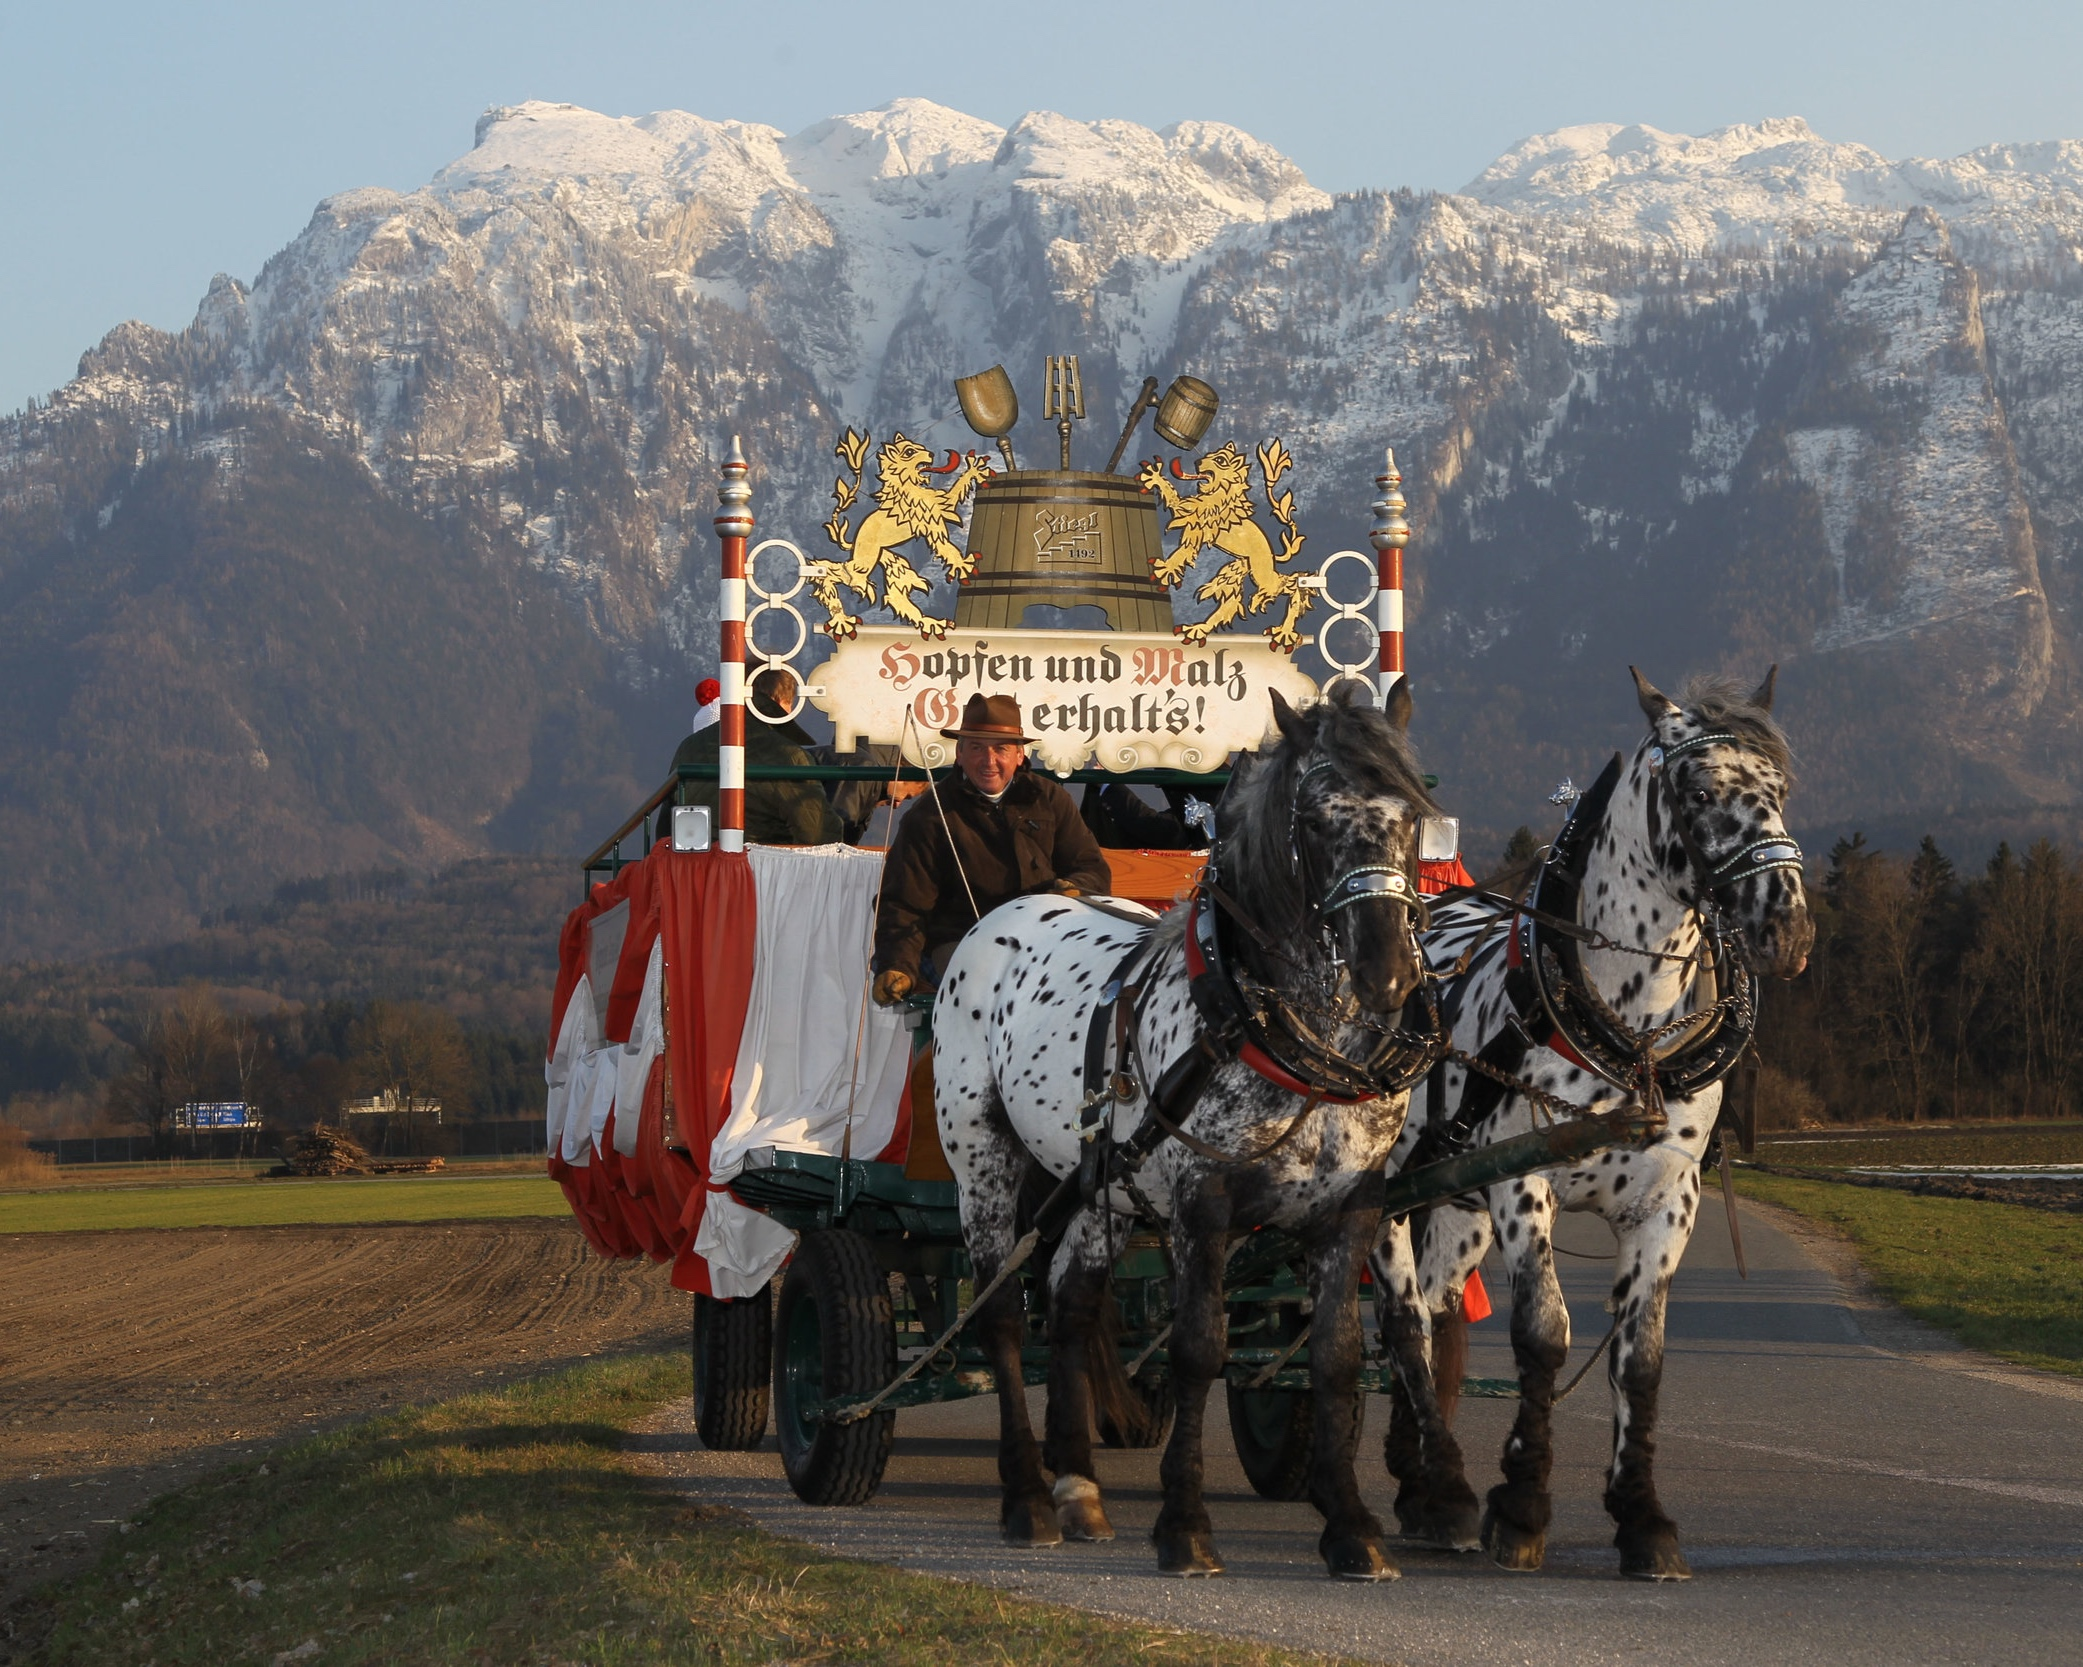 Traditional beer delivery in Salzburg, with a horse drawn carriage